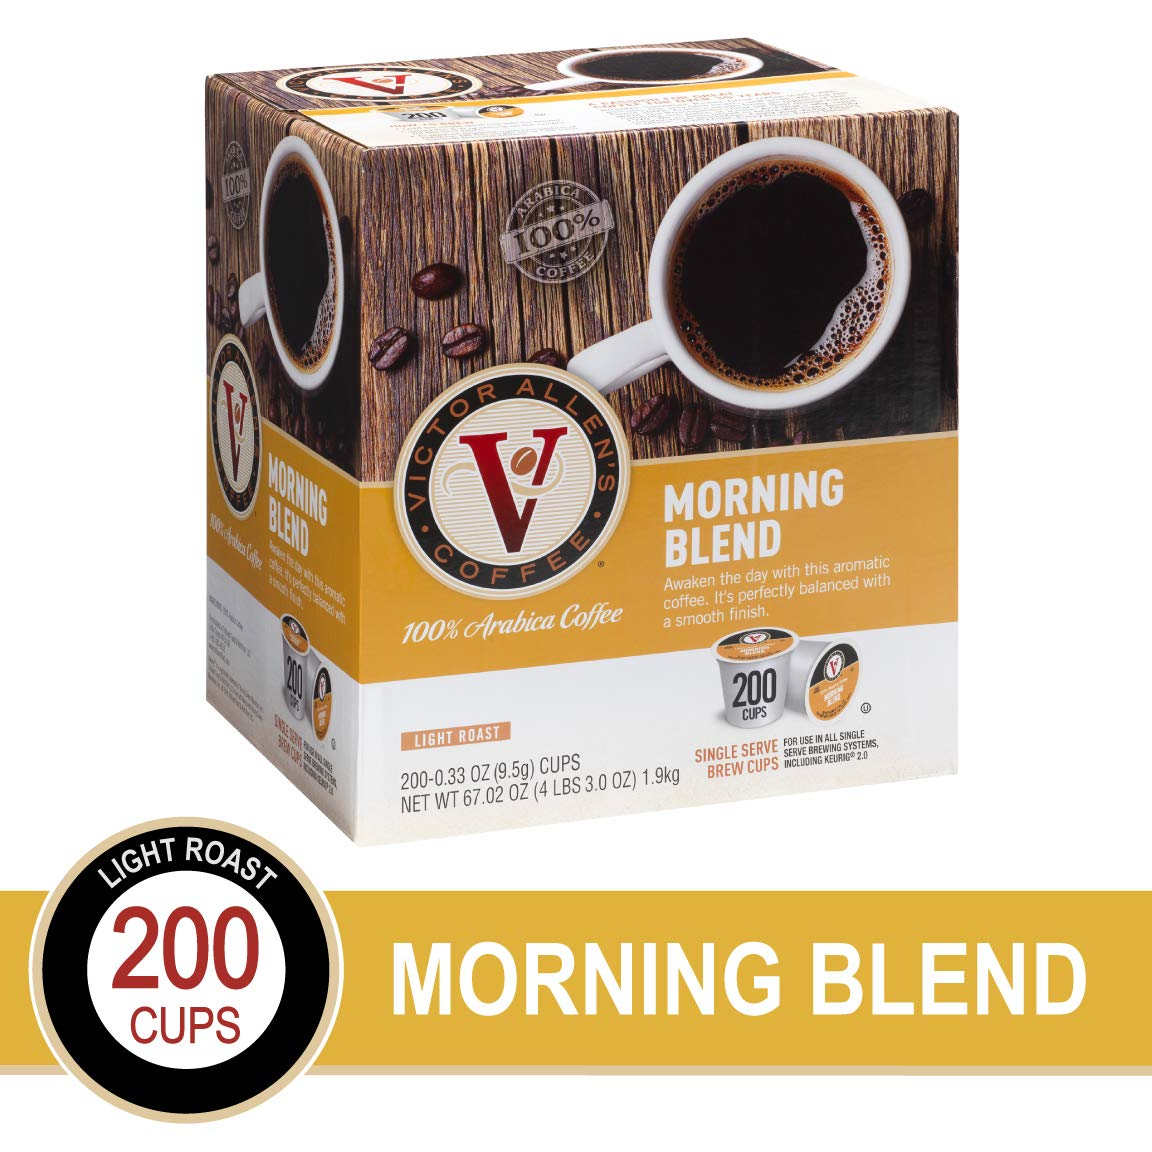 Morning Blend for K-Cup Keurig 2.0 Brewers, 200 Count, Victor Allen's Coffee  Single Serve Coffee Pods